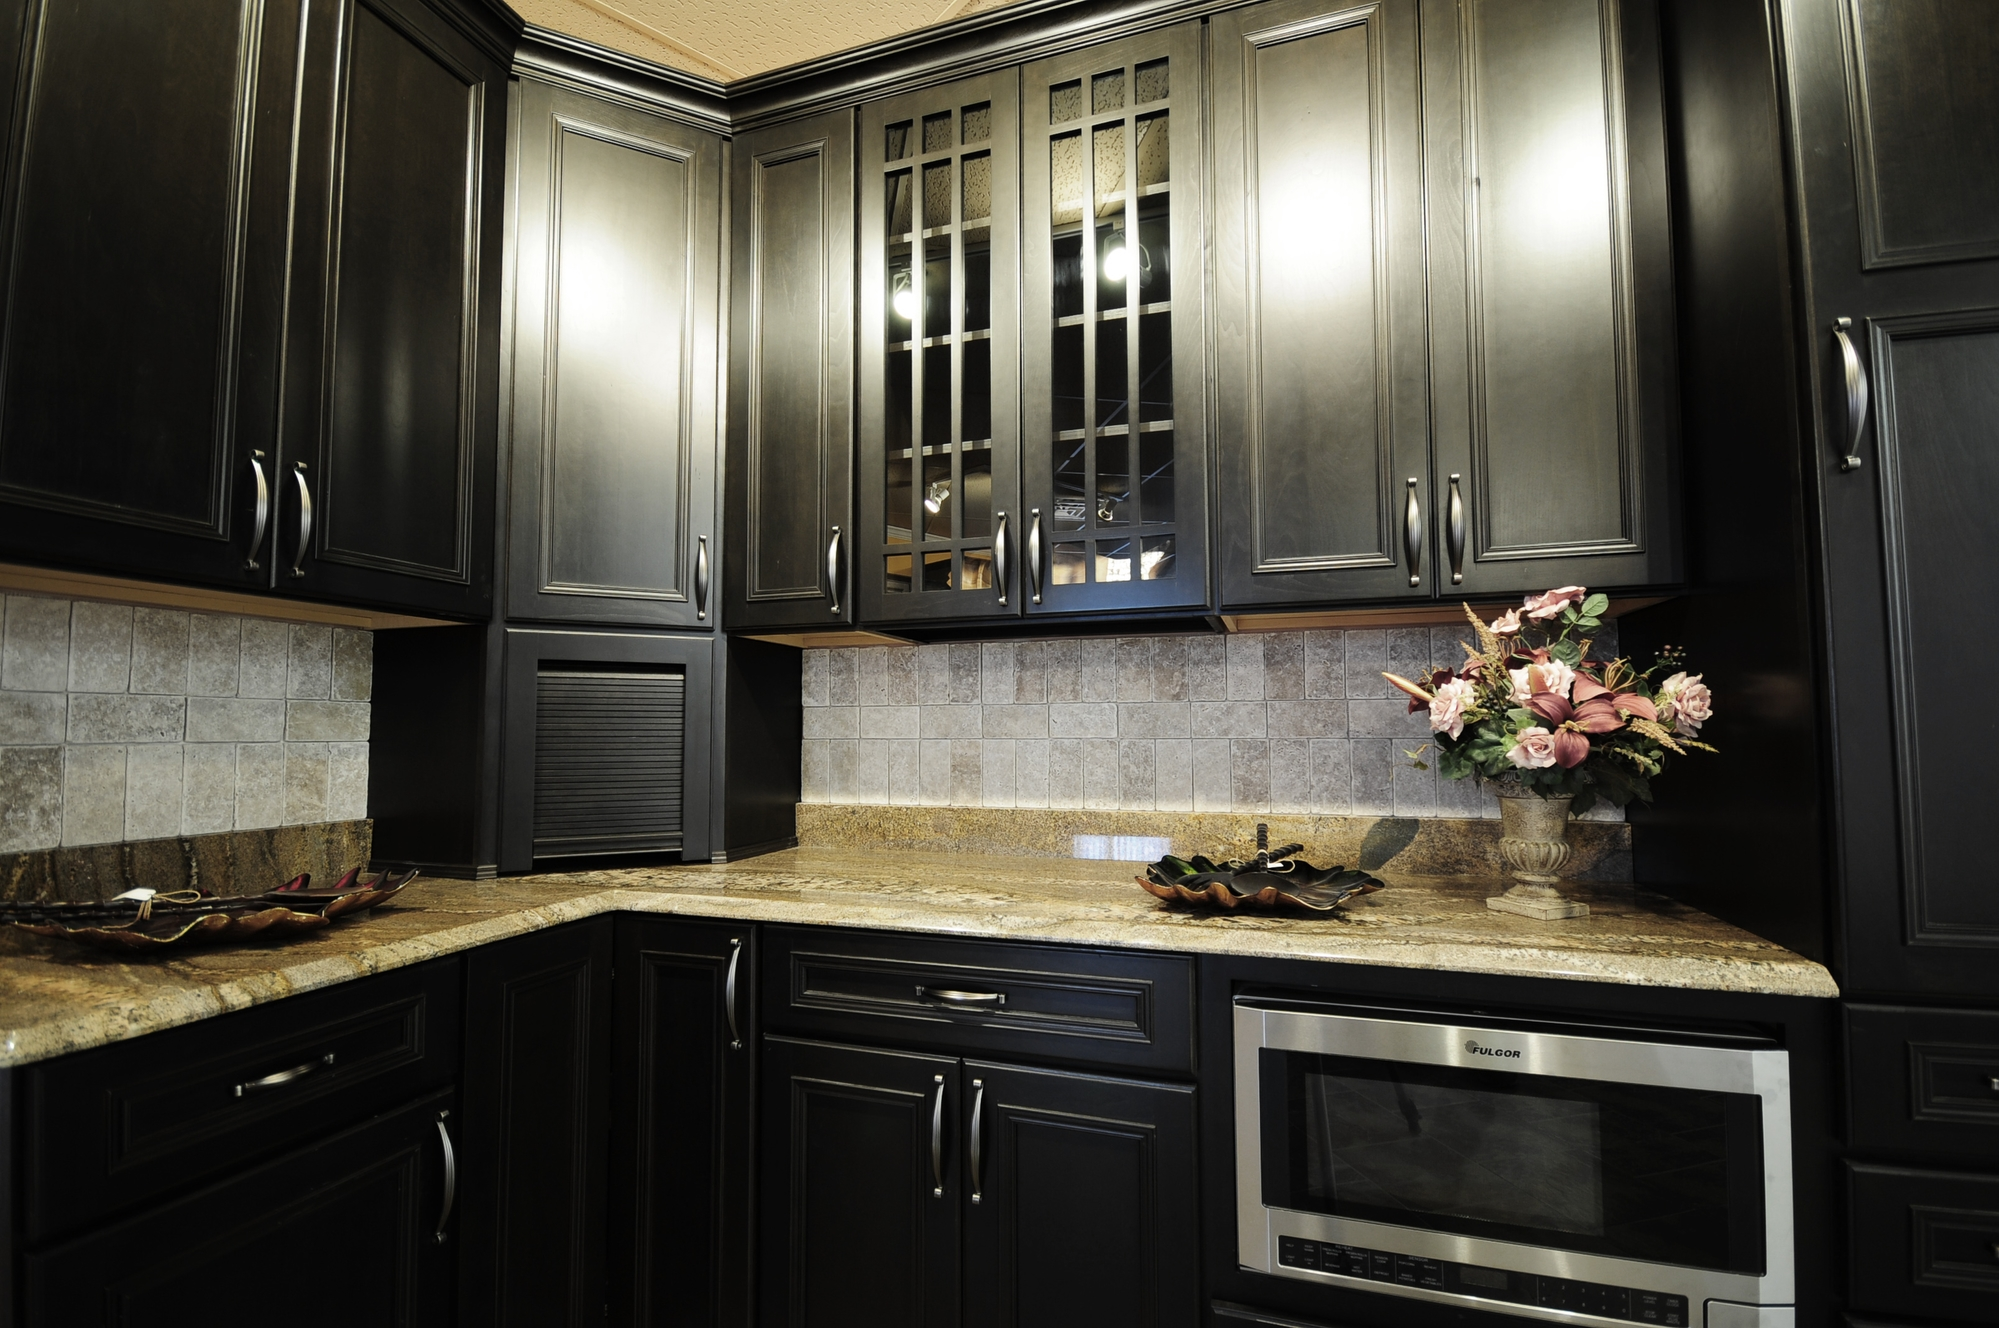 paint or stain kitchen cabinets essentials calphalon remodeling painting vs staining your